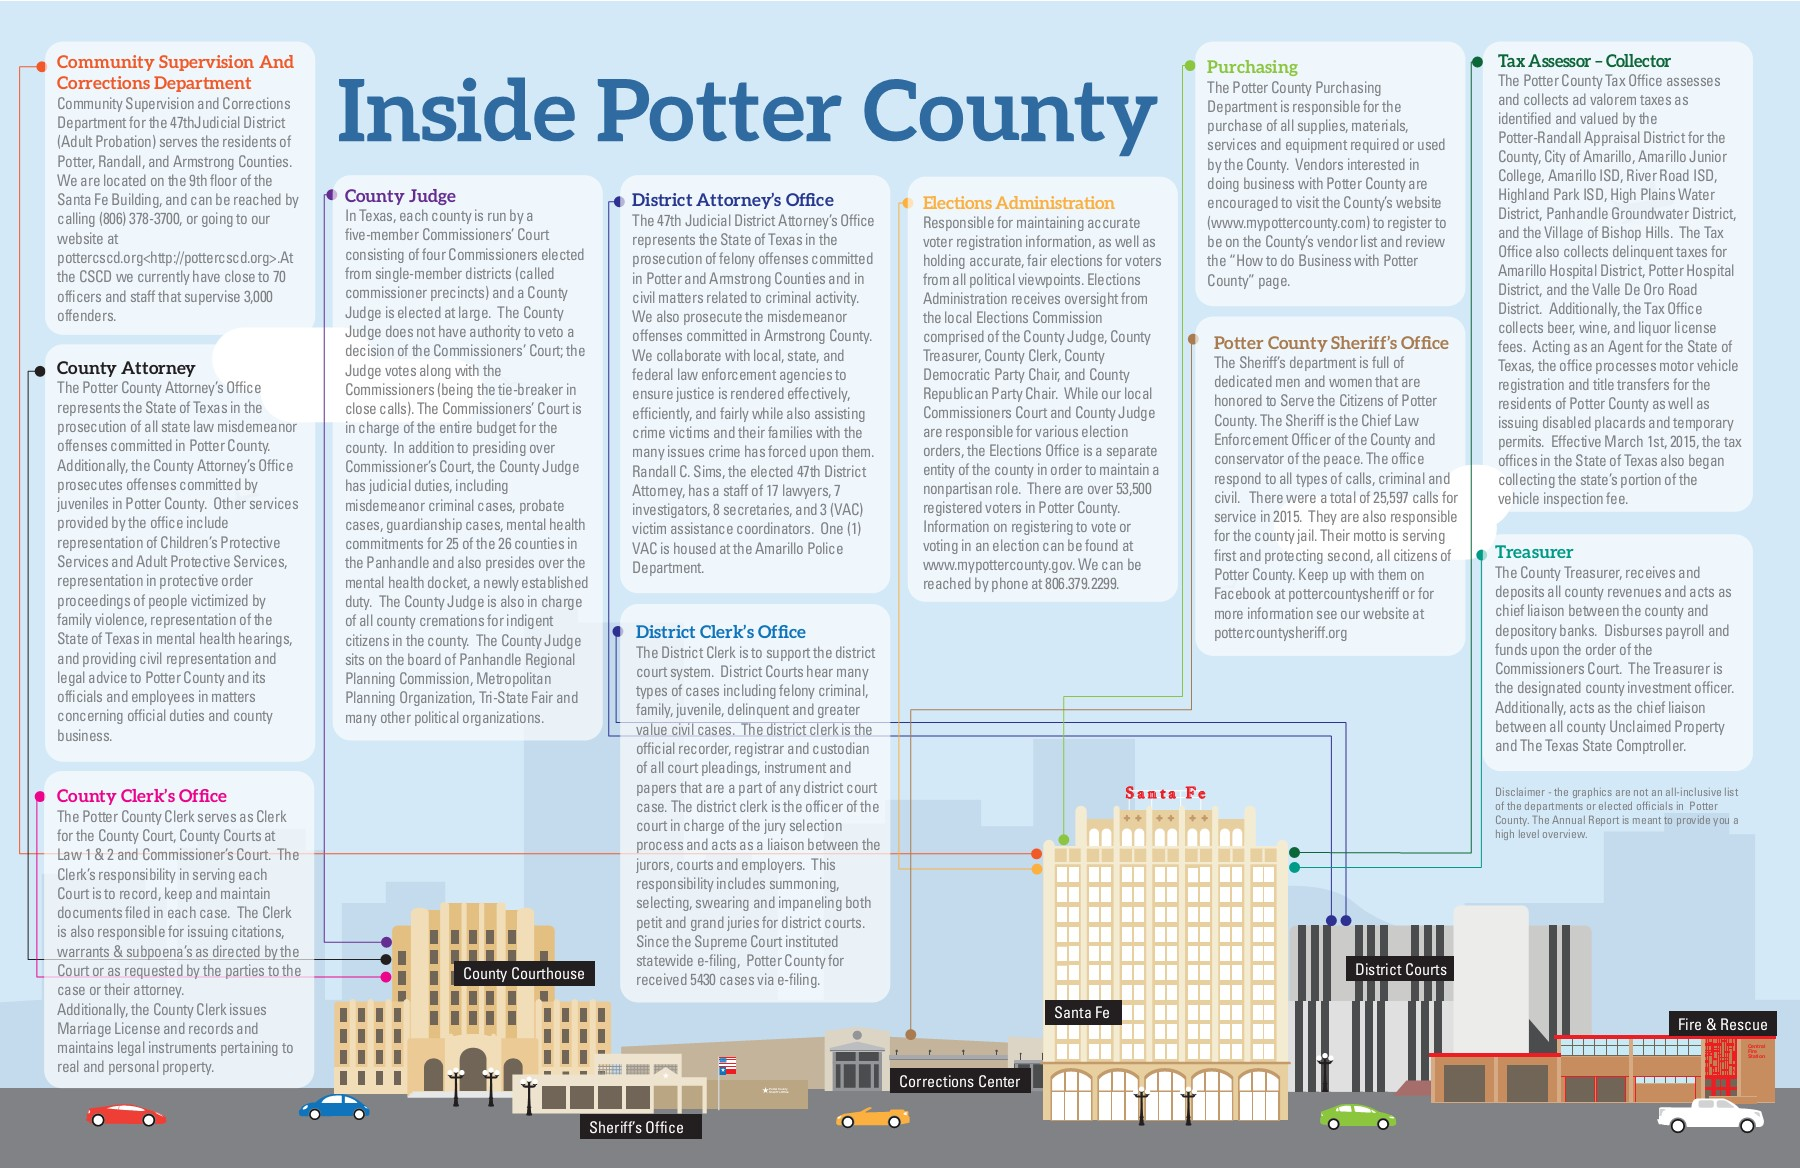 Potter_County_Quick_Facts_2017_draft_2 Pages 1 - 3 - Text